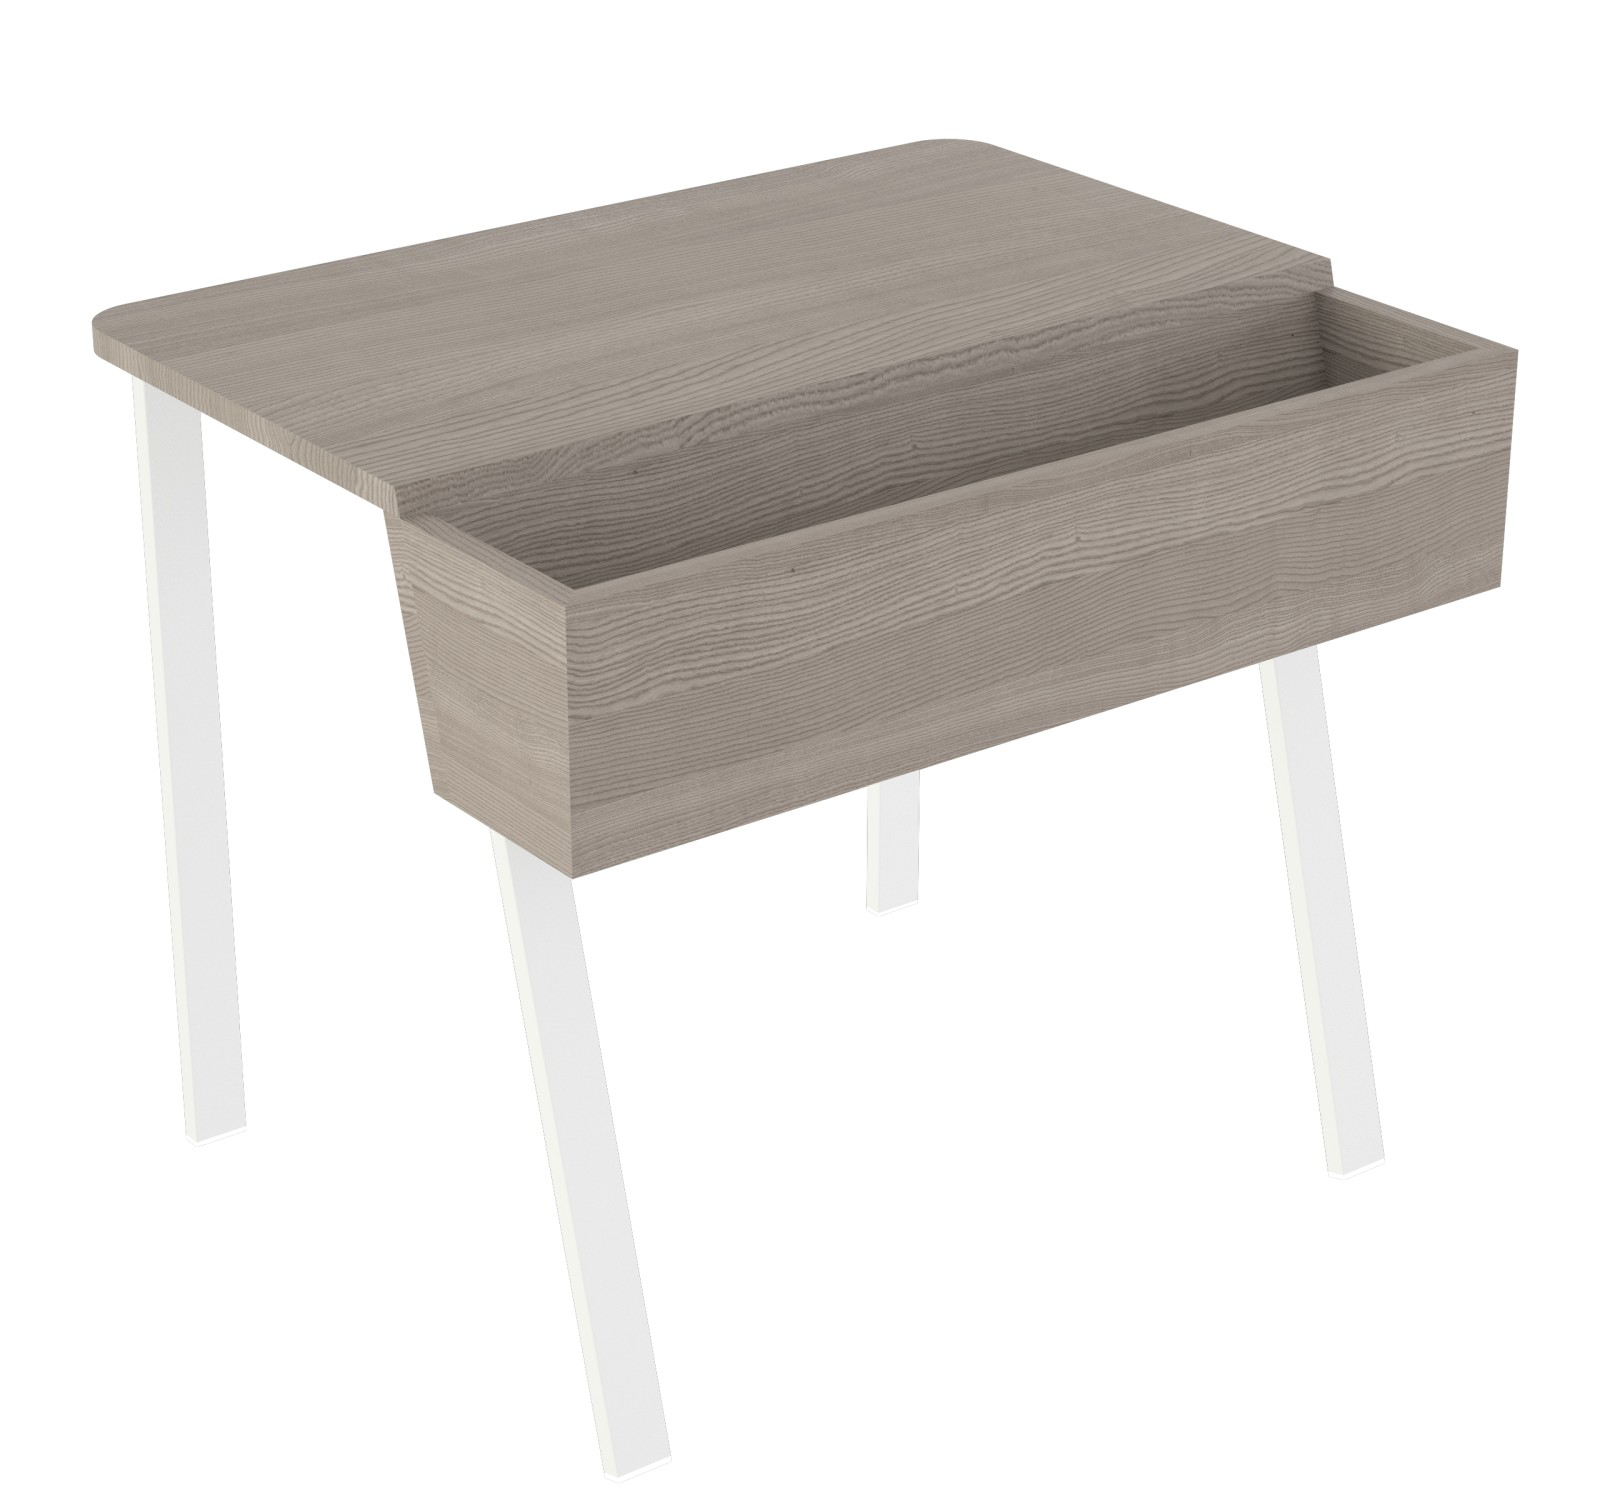 Wing Desk for One Wing Desk for One-grey stained solid ash tabletop-white frame